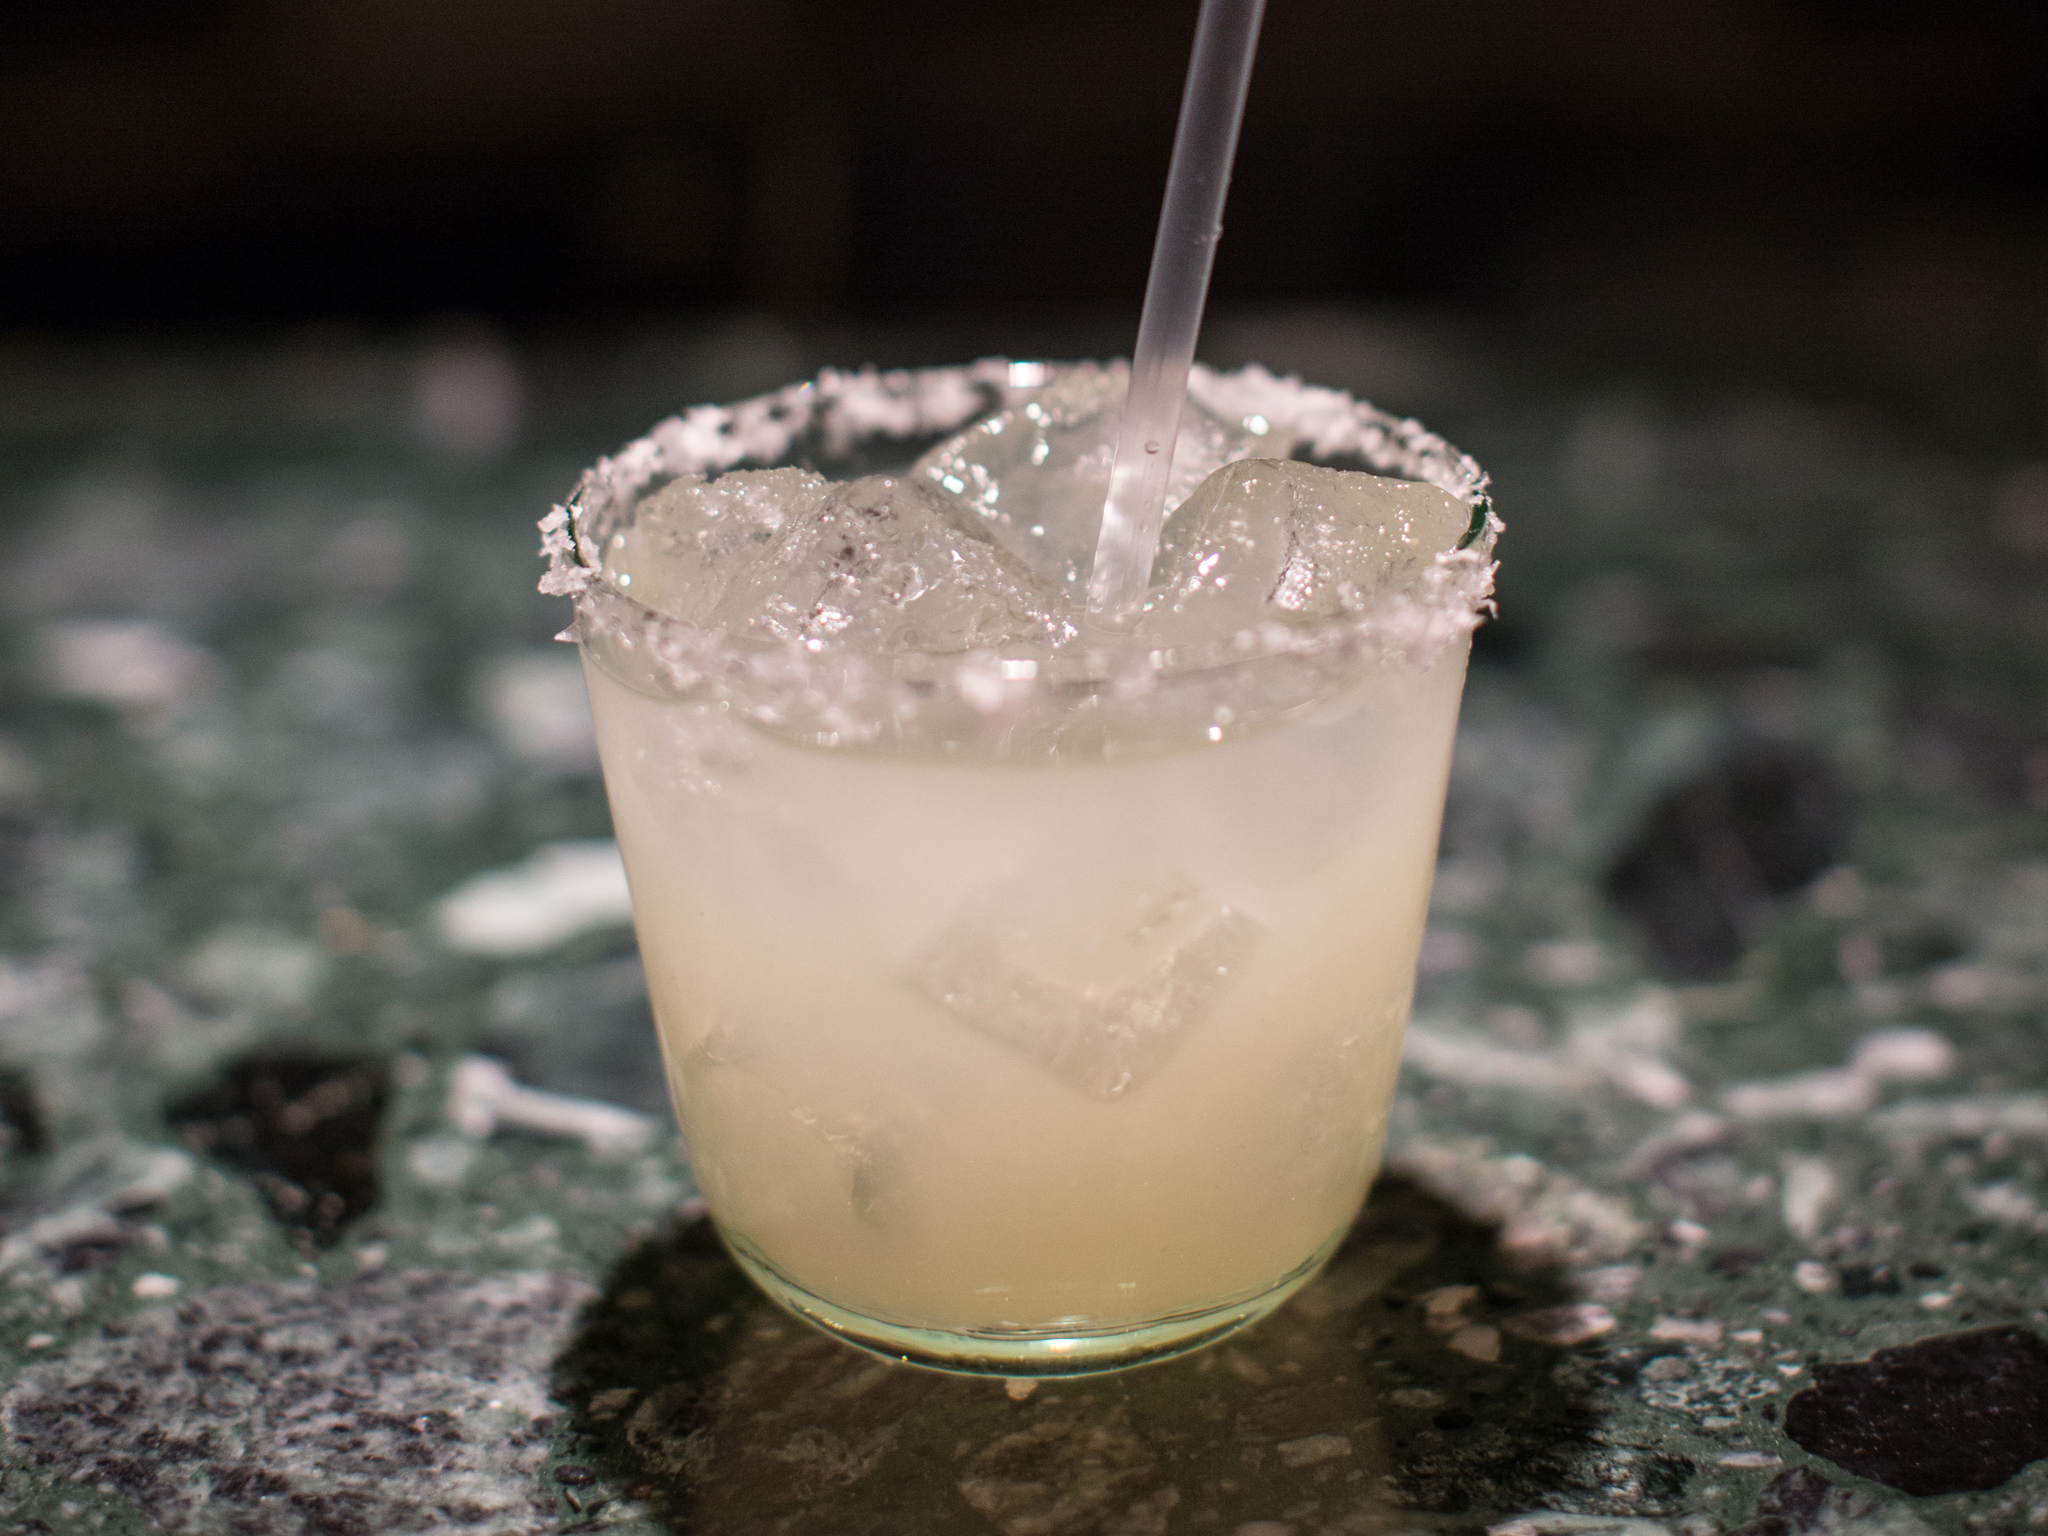 Ace places to drink margaritas in London